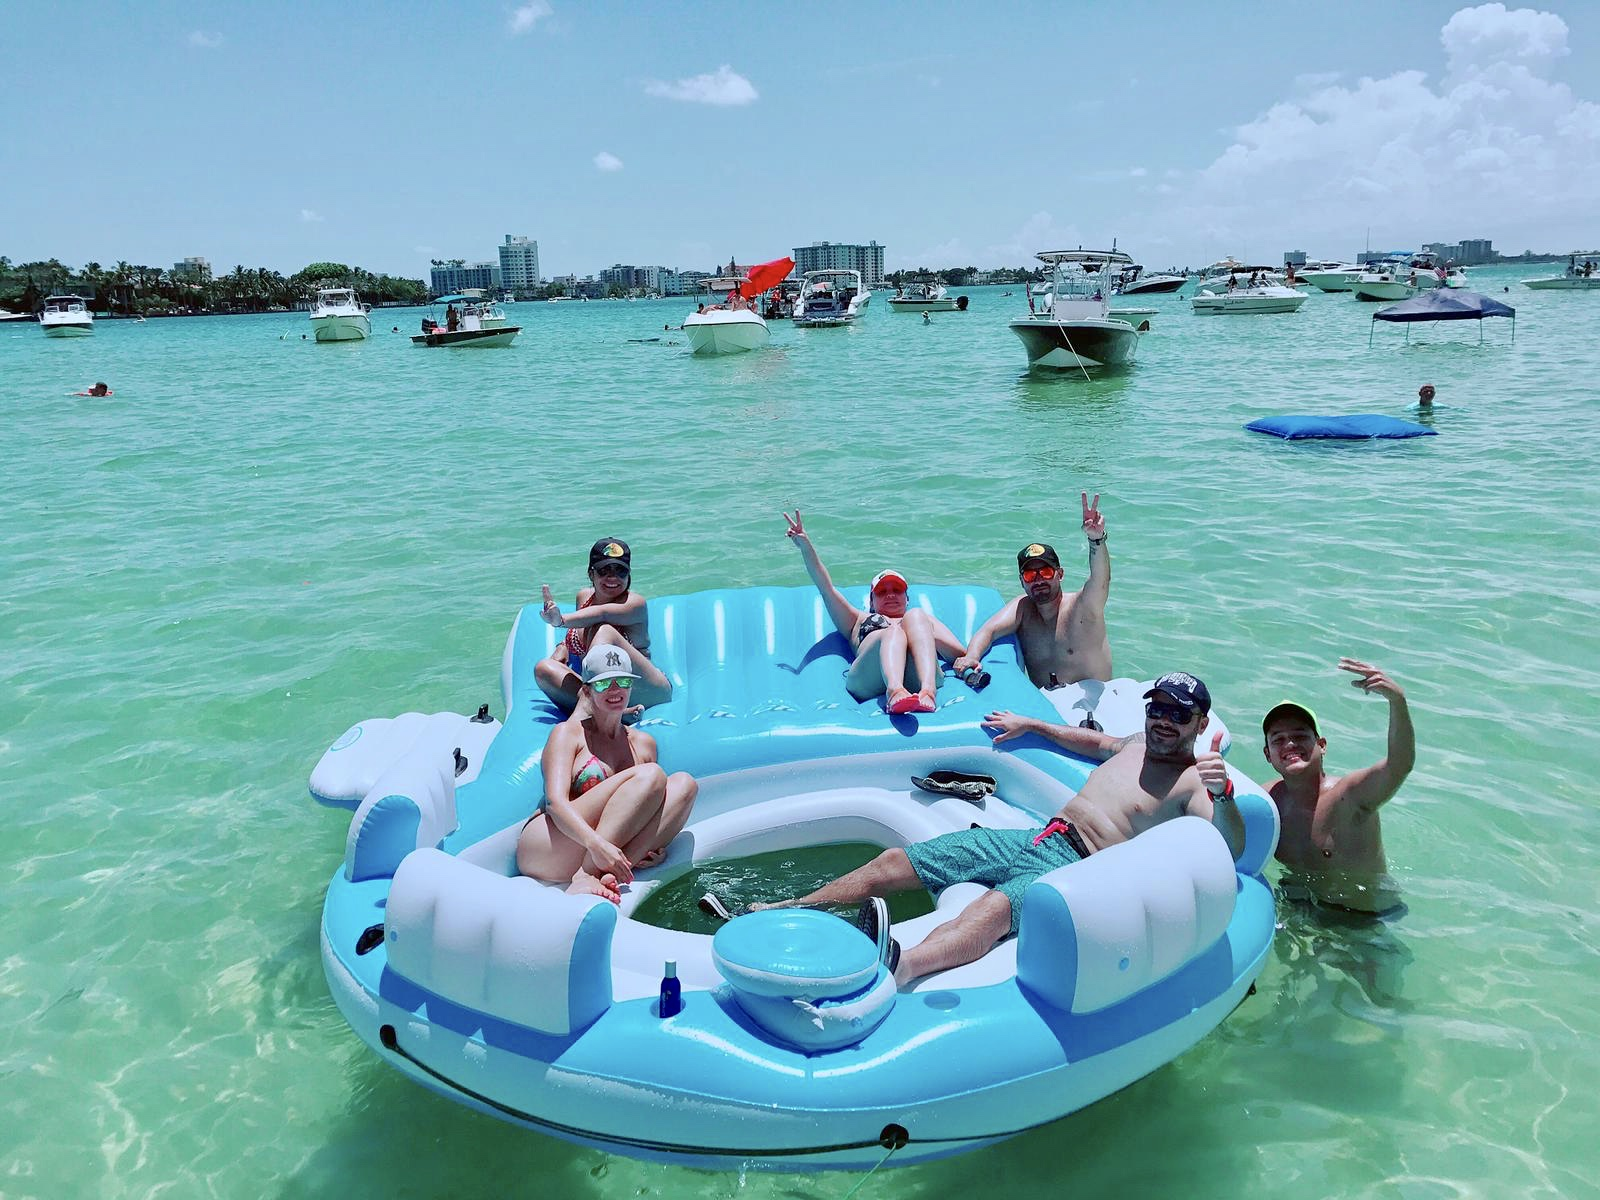 Things to do in Florida | Rent Boats, JetSki's, ATV's ...